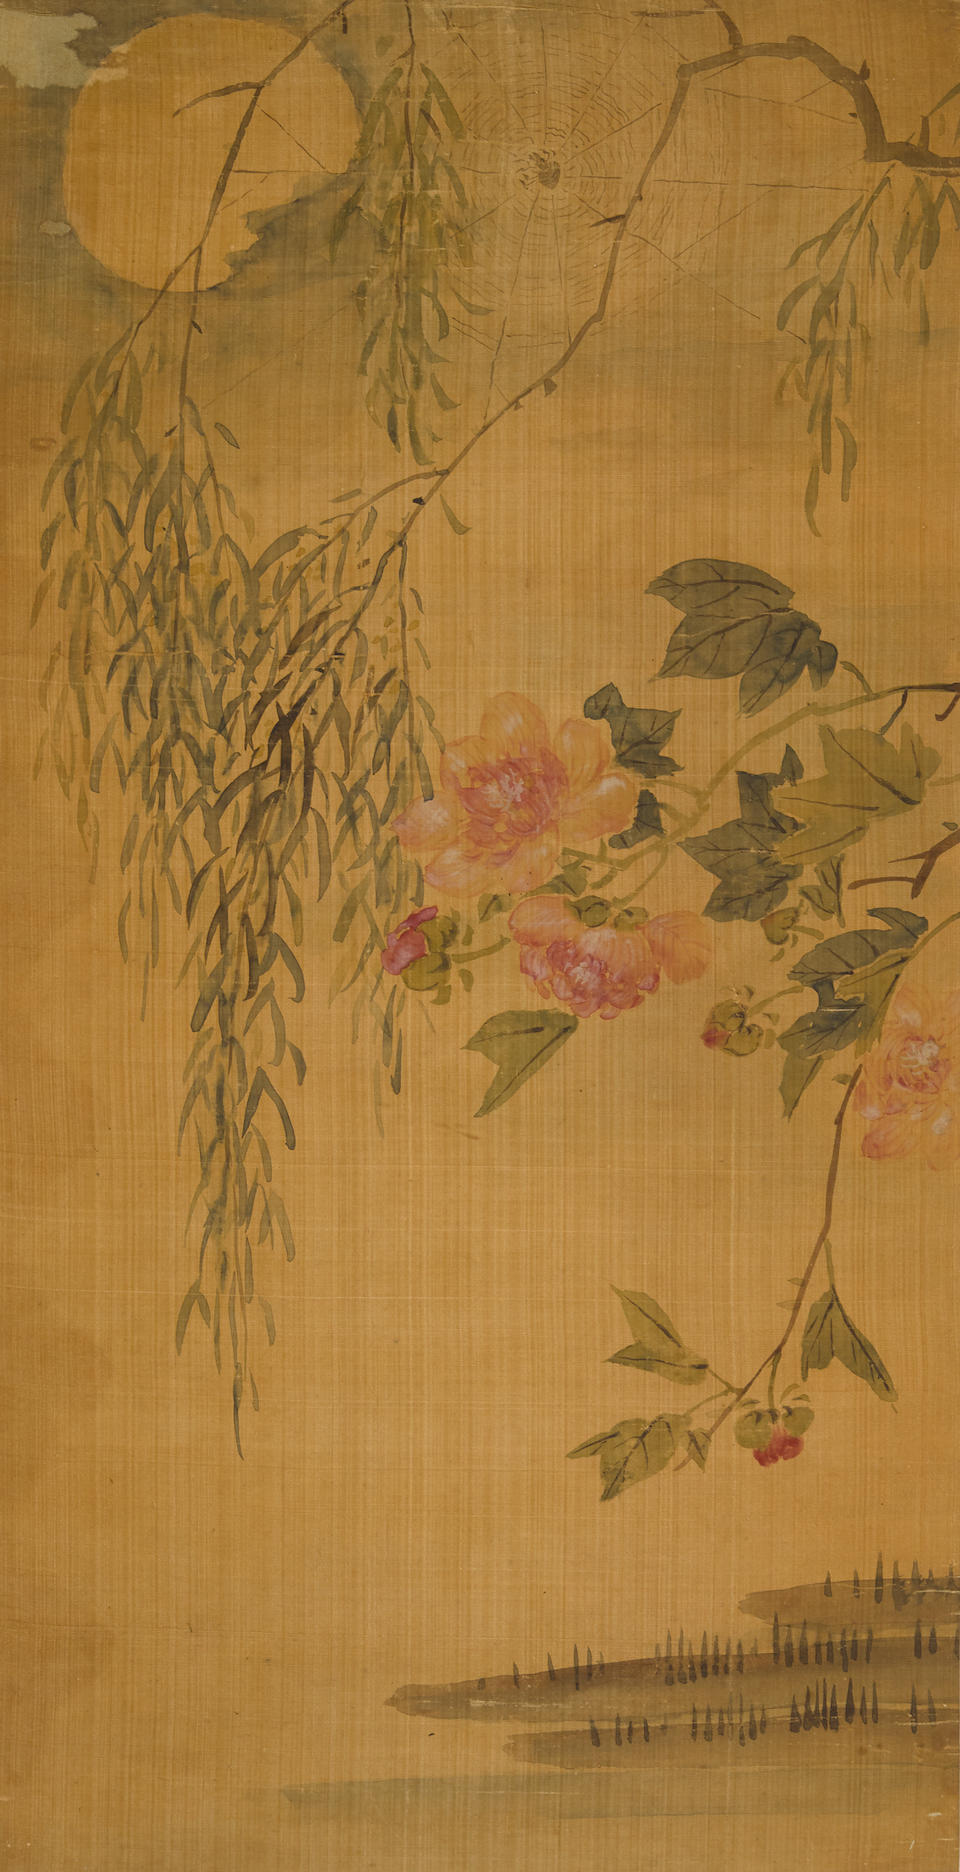 Wang Enlong (Qing dynasty) and Anonymous  Landscape and Flower  (2)